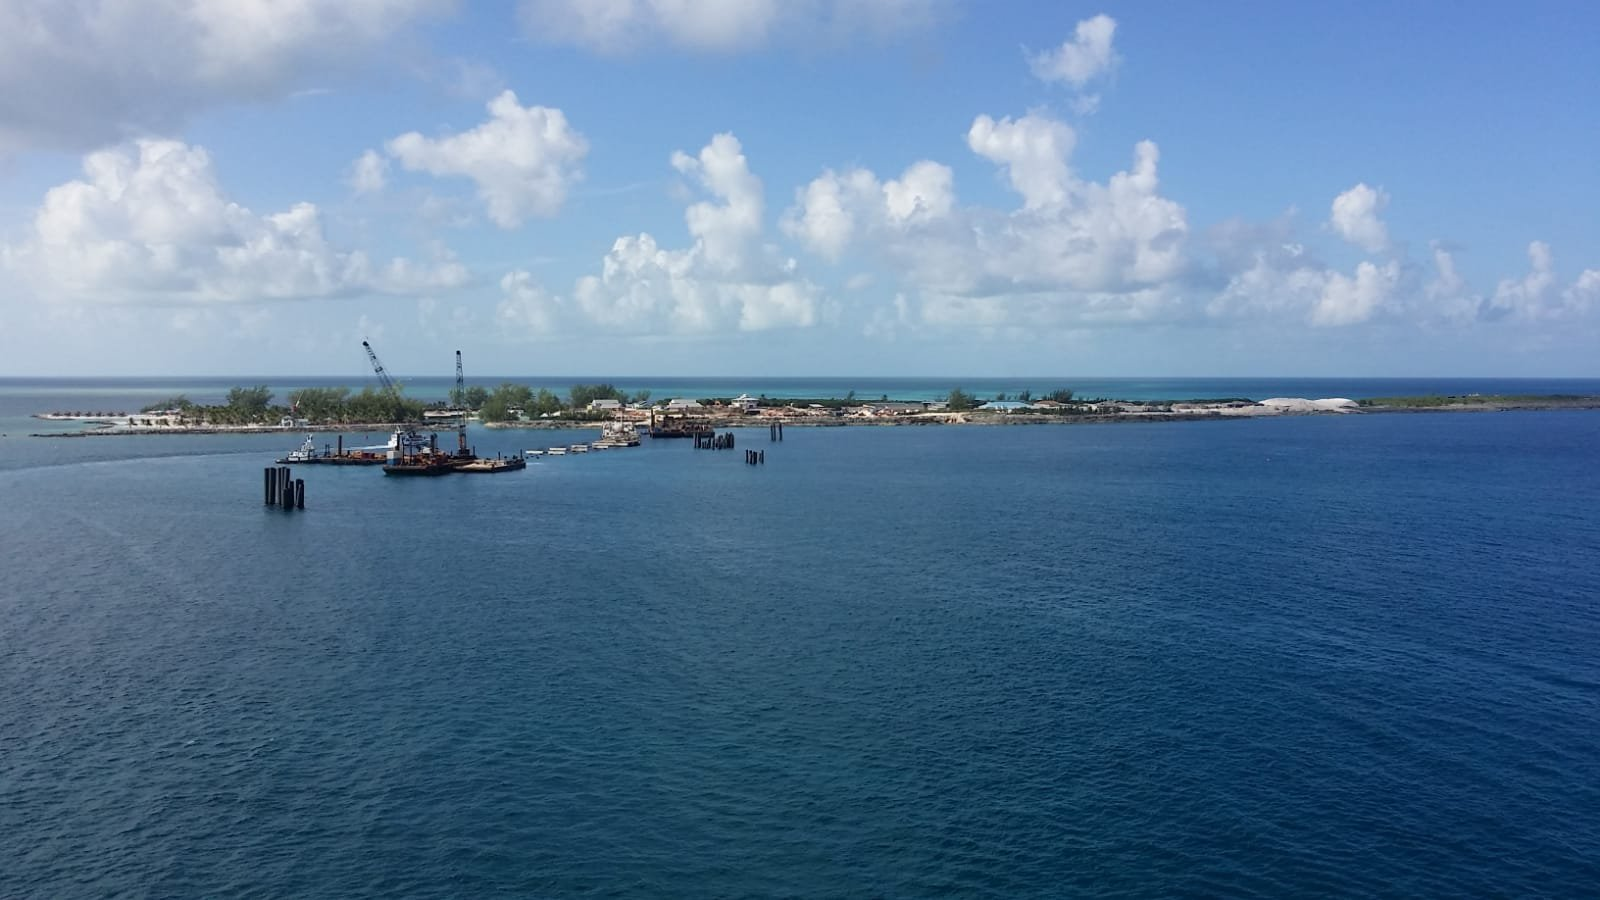 Perfect Day at CocoCay construction progress photo report (royalcaribbeanblog.com)